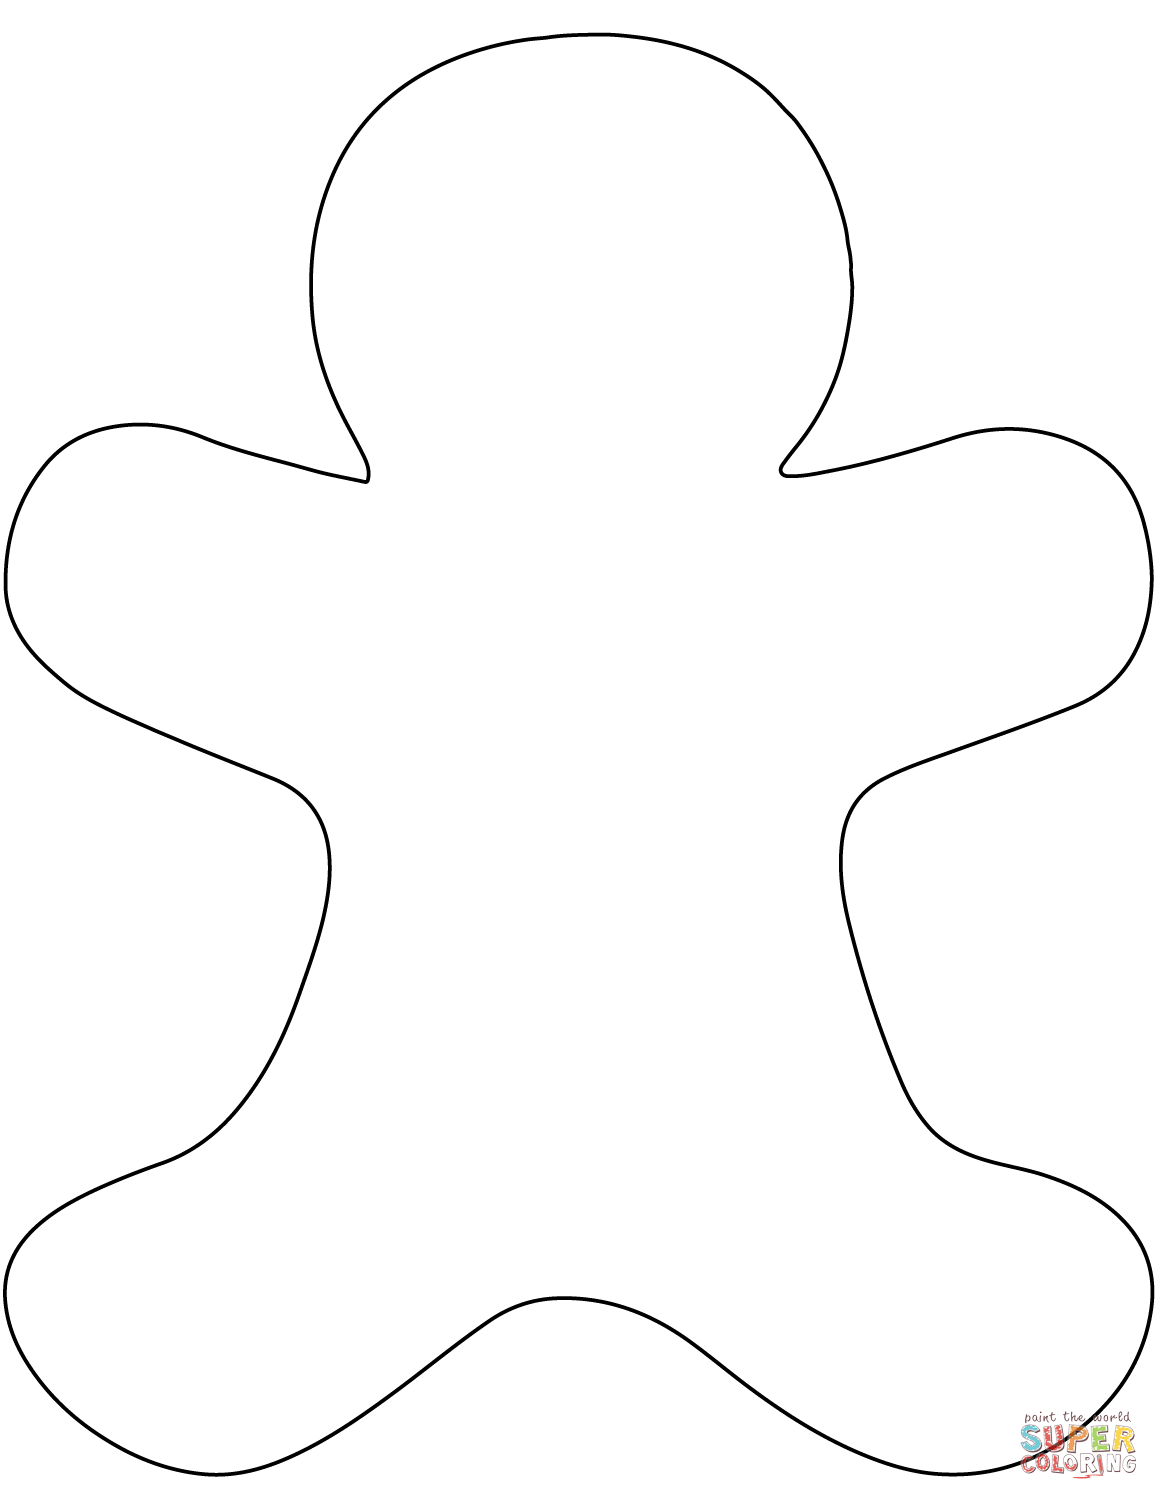 Blank Gingerbread Man coloring page.